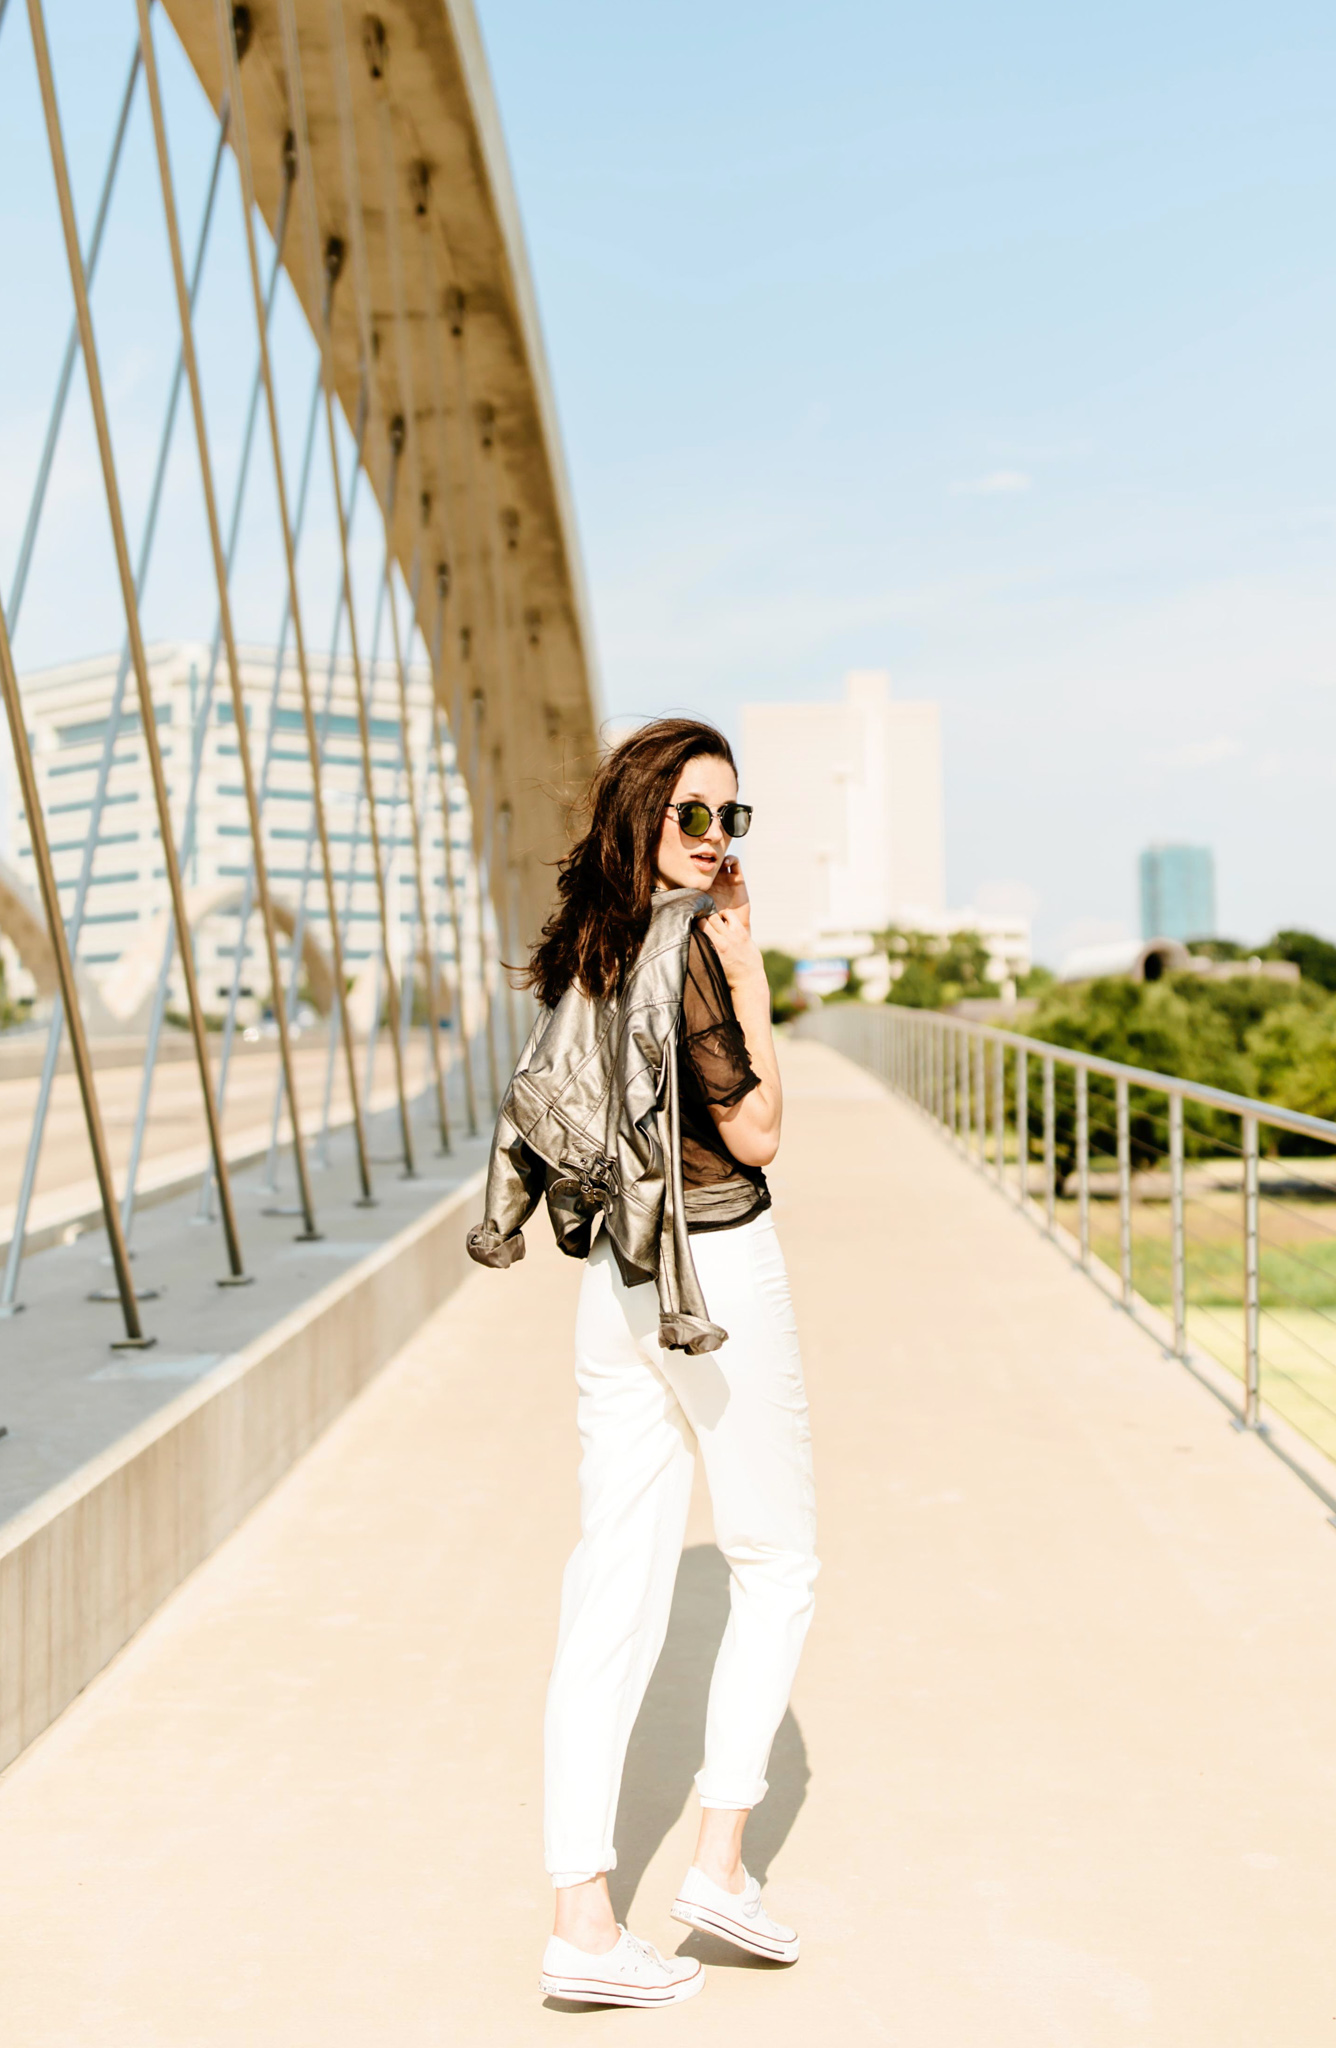 Fort Worth Challenge shoot - Alexa Vossler Photo-22.jpg